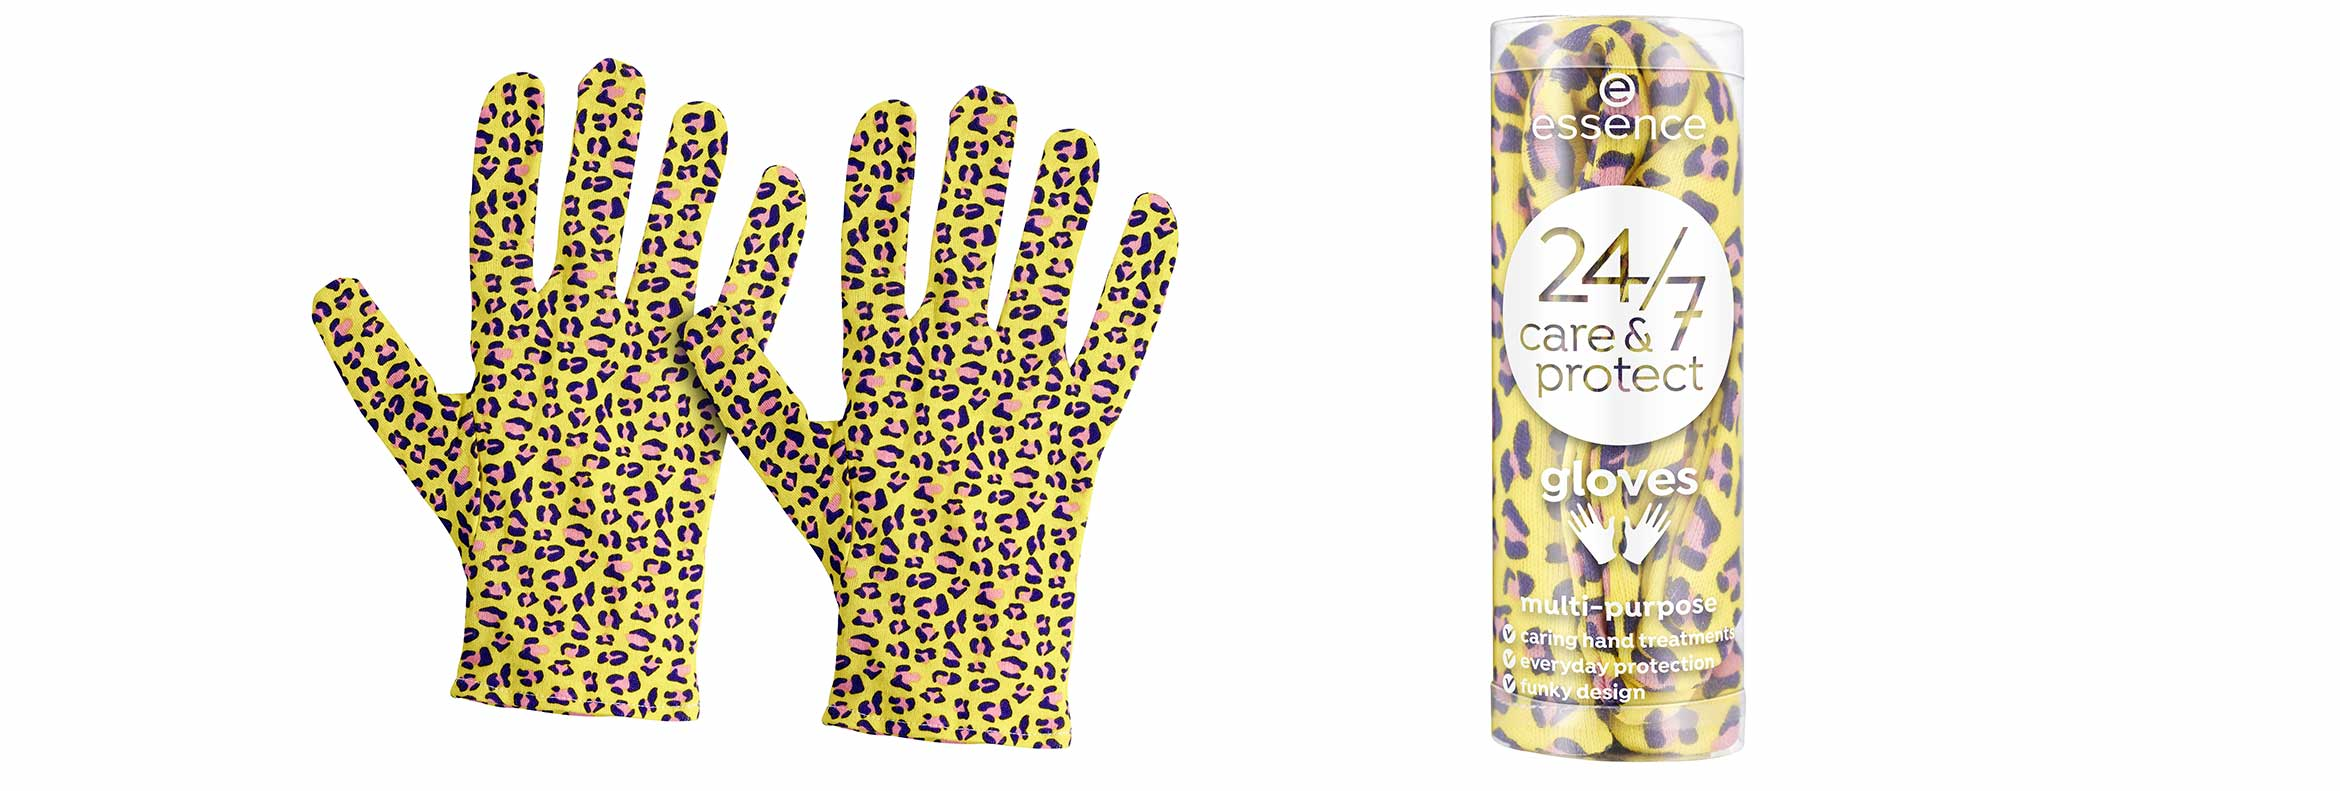 essence 24/7 care protect cotton gloves